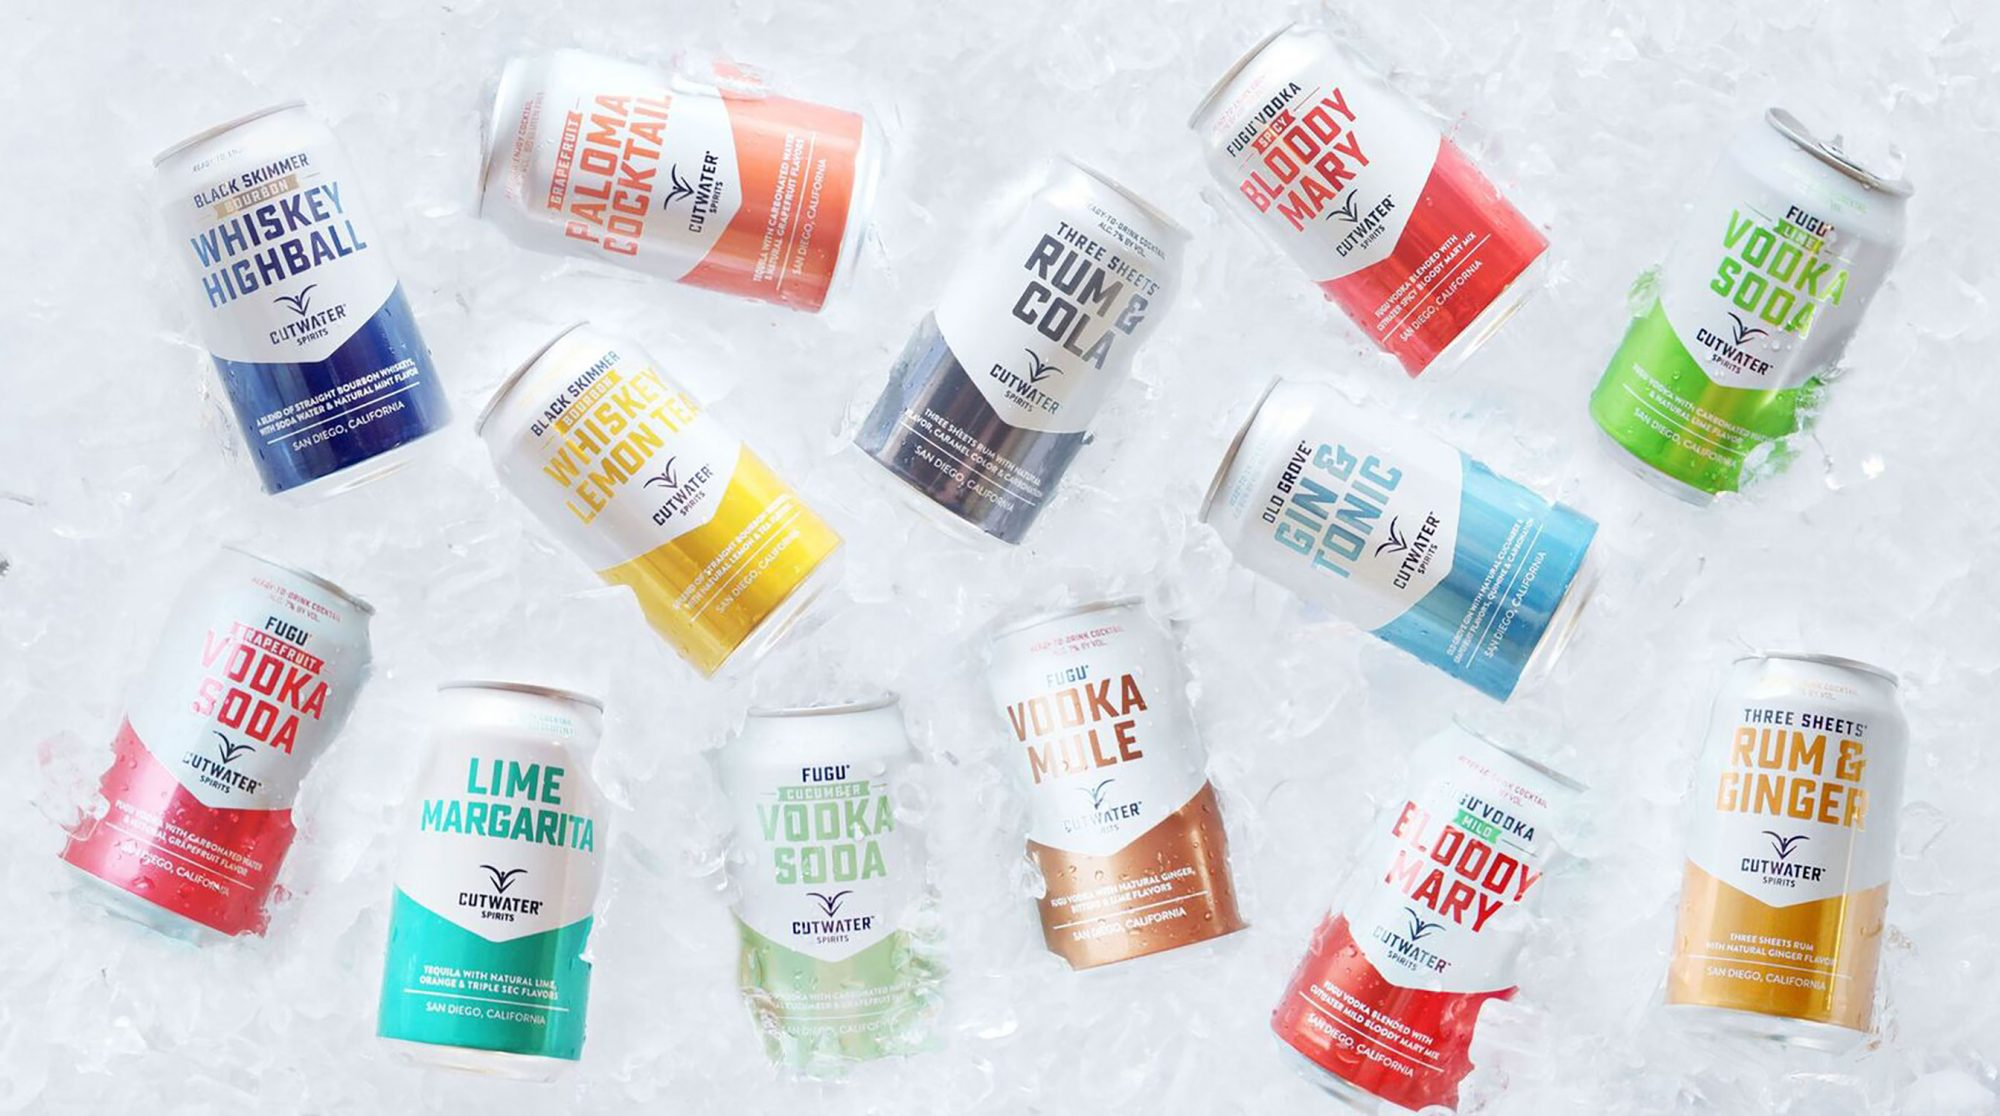 We Tried 12 Classic Cocktails from a Can, and A Few Took Us By Surprise